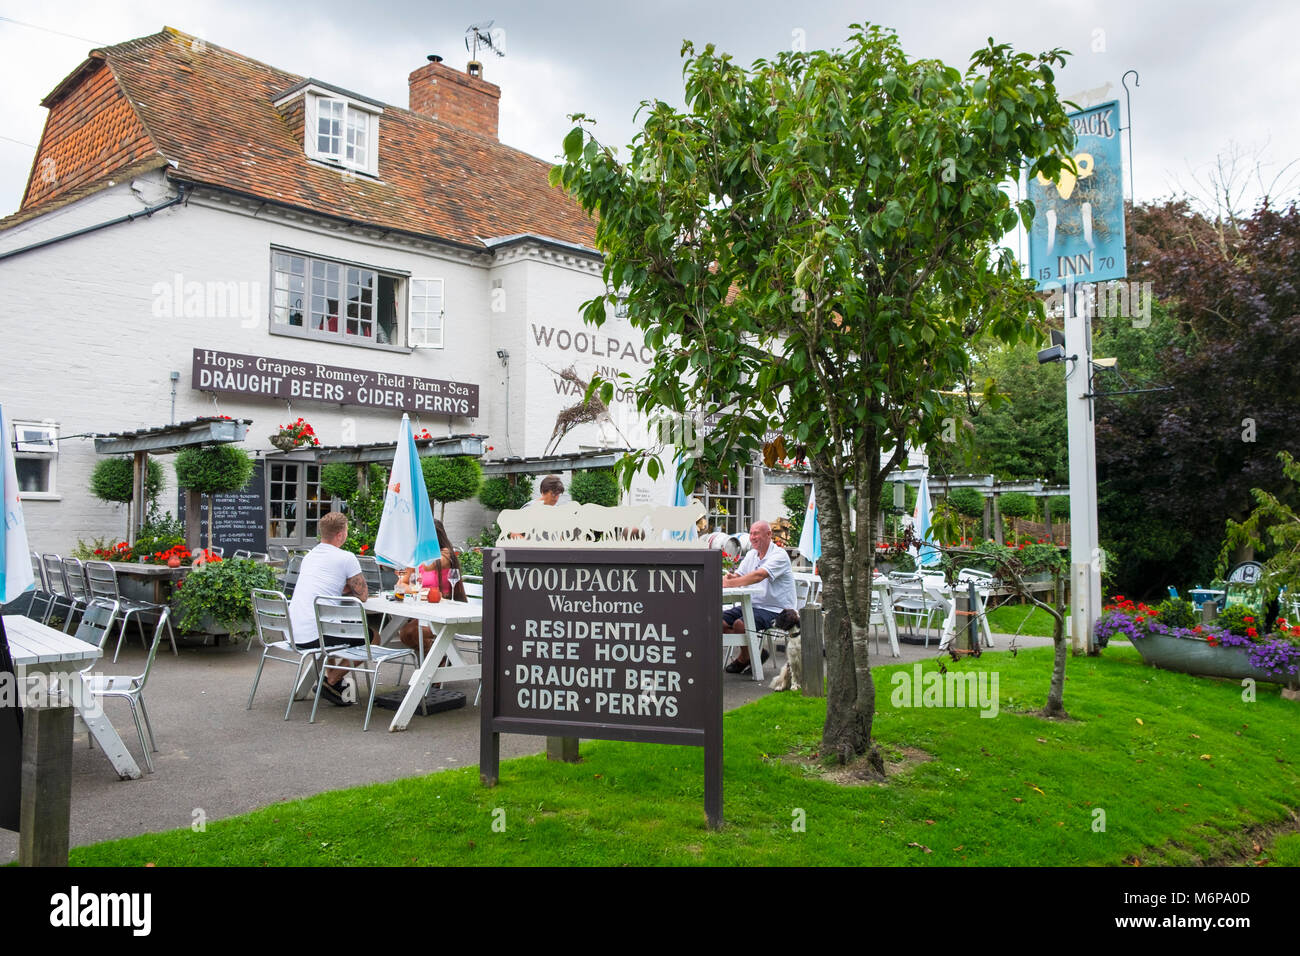 Woolpack Inn with people dining outside, a 16th century pub in Warehorne, Kent, UK - Stock Image